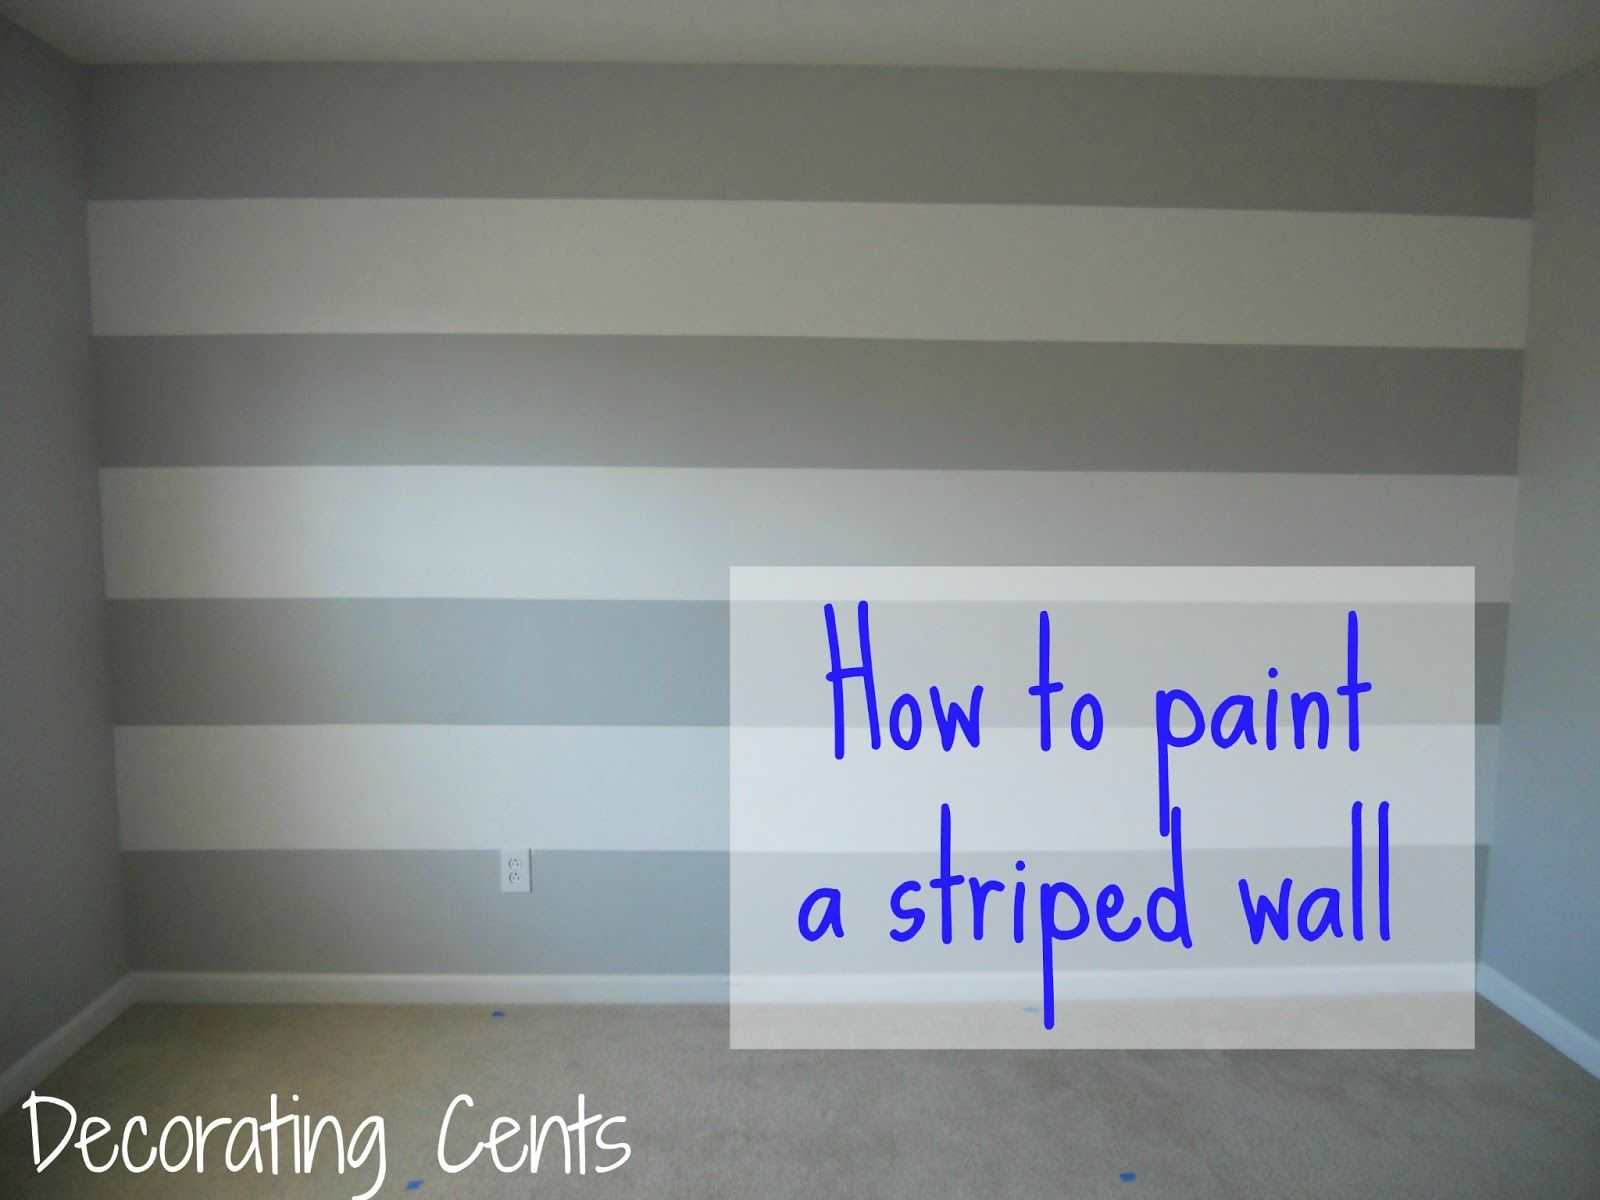 Bedroom Paint Ideas Accent Wall decorating cents: painting a striped wall | for the home